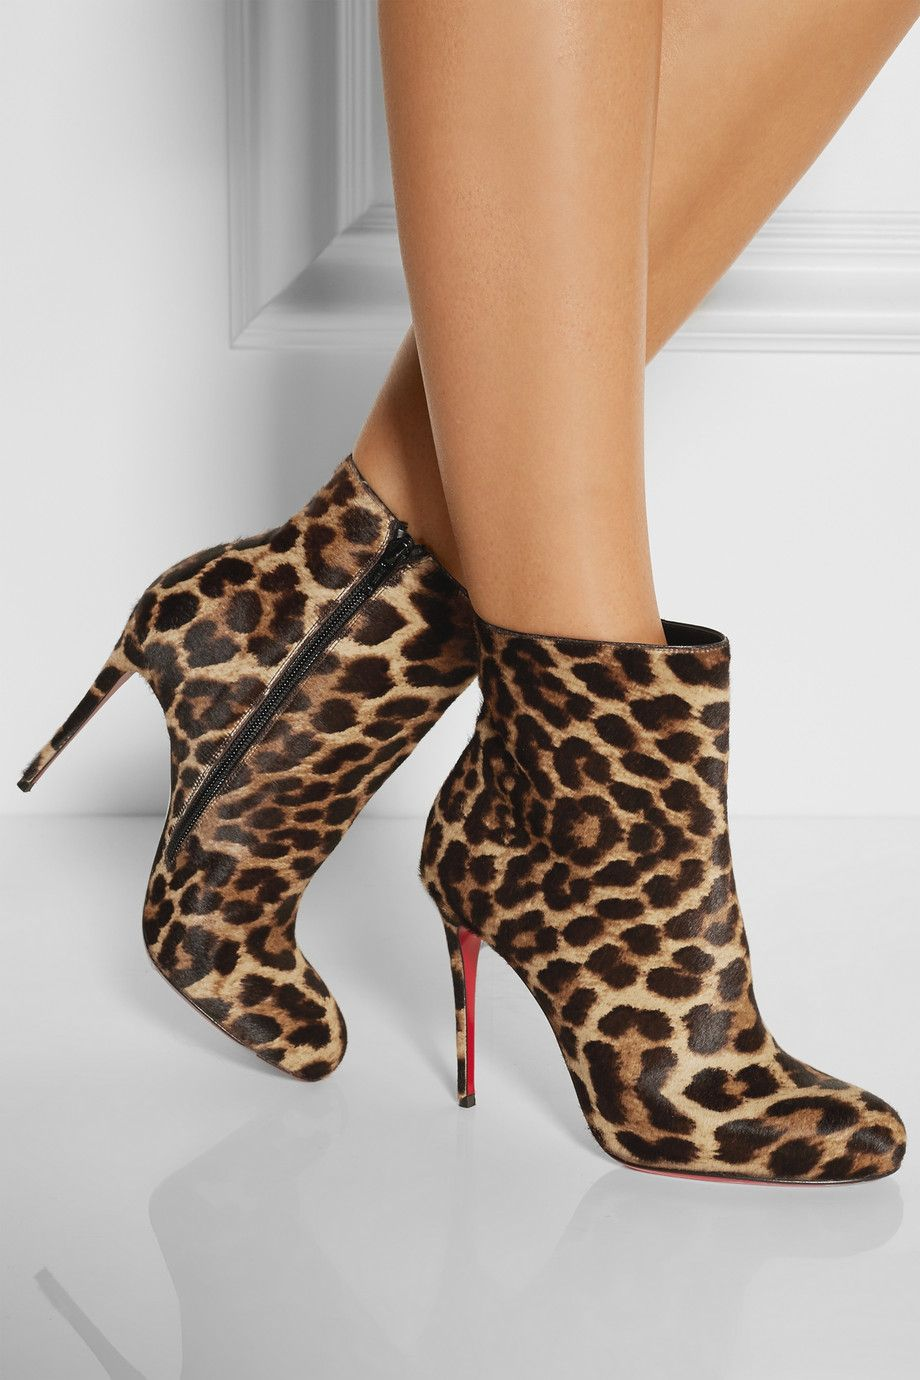 Women's Leopard Print Pony Hair Buckle Leather High Heel Dress Boots